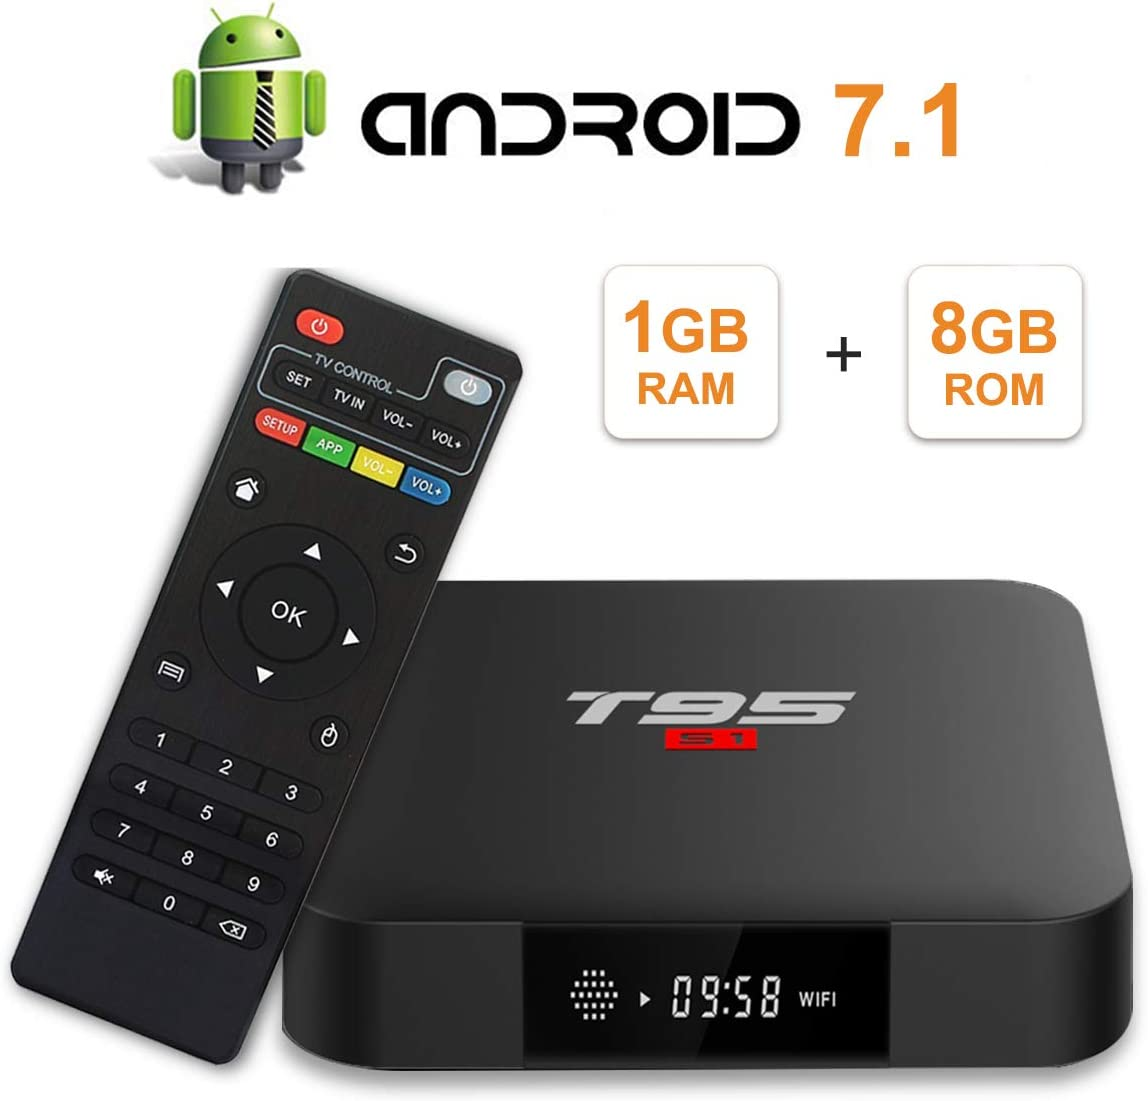 T95 S1 Android 7.1 TV Box con 1GB RAM/8GB ROM Amlogic S905W Quad-Core Digital Display HDMI HD Support 2.4G WiFi 3D 4K: Amazon.es: Electrónica